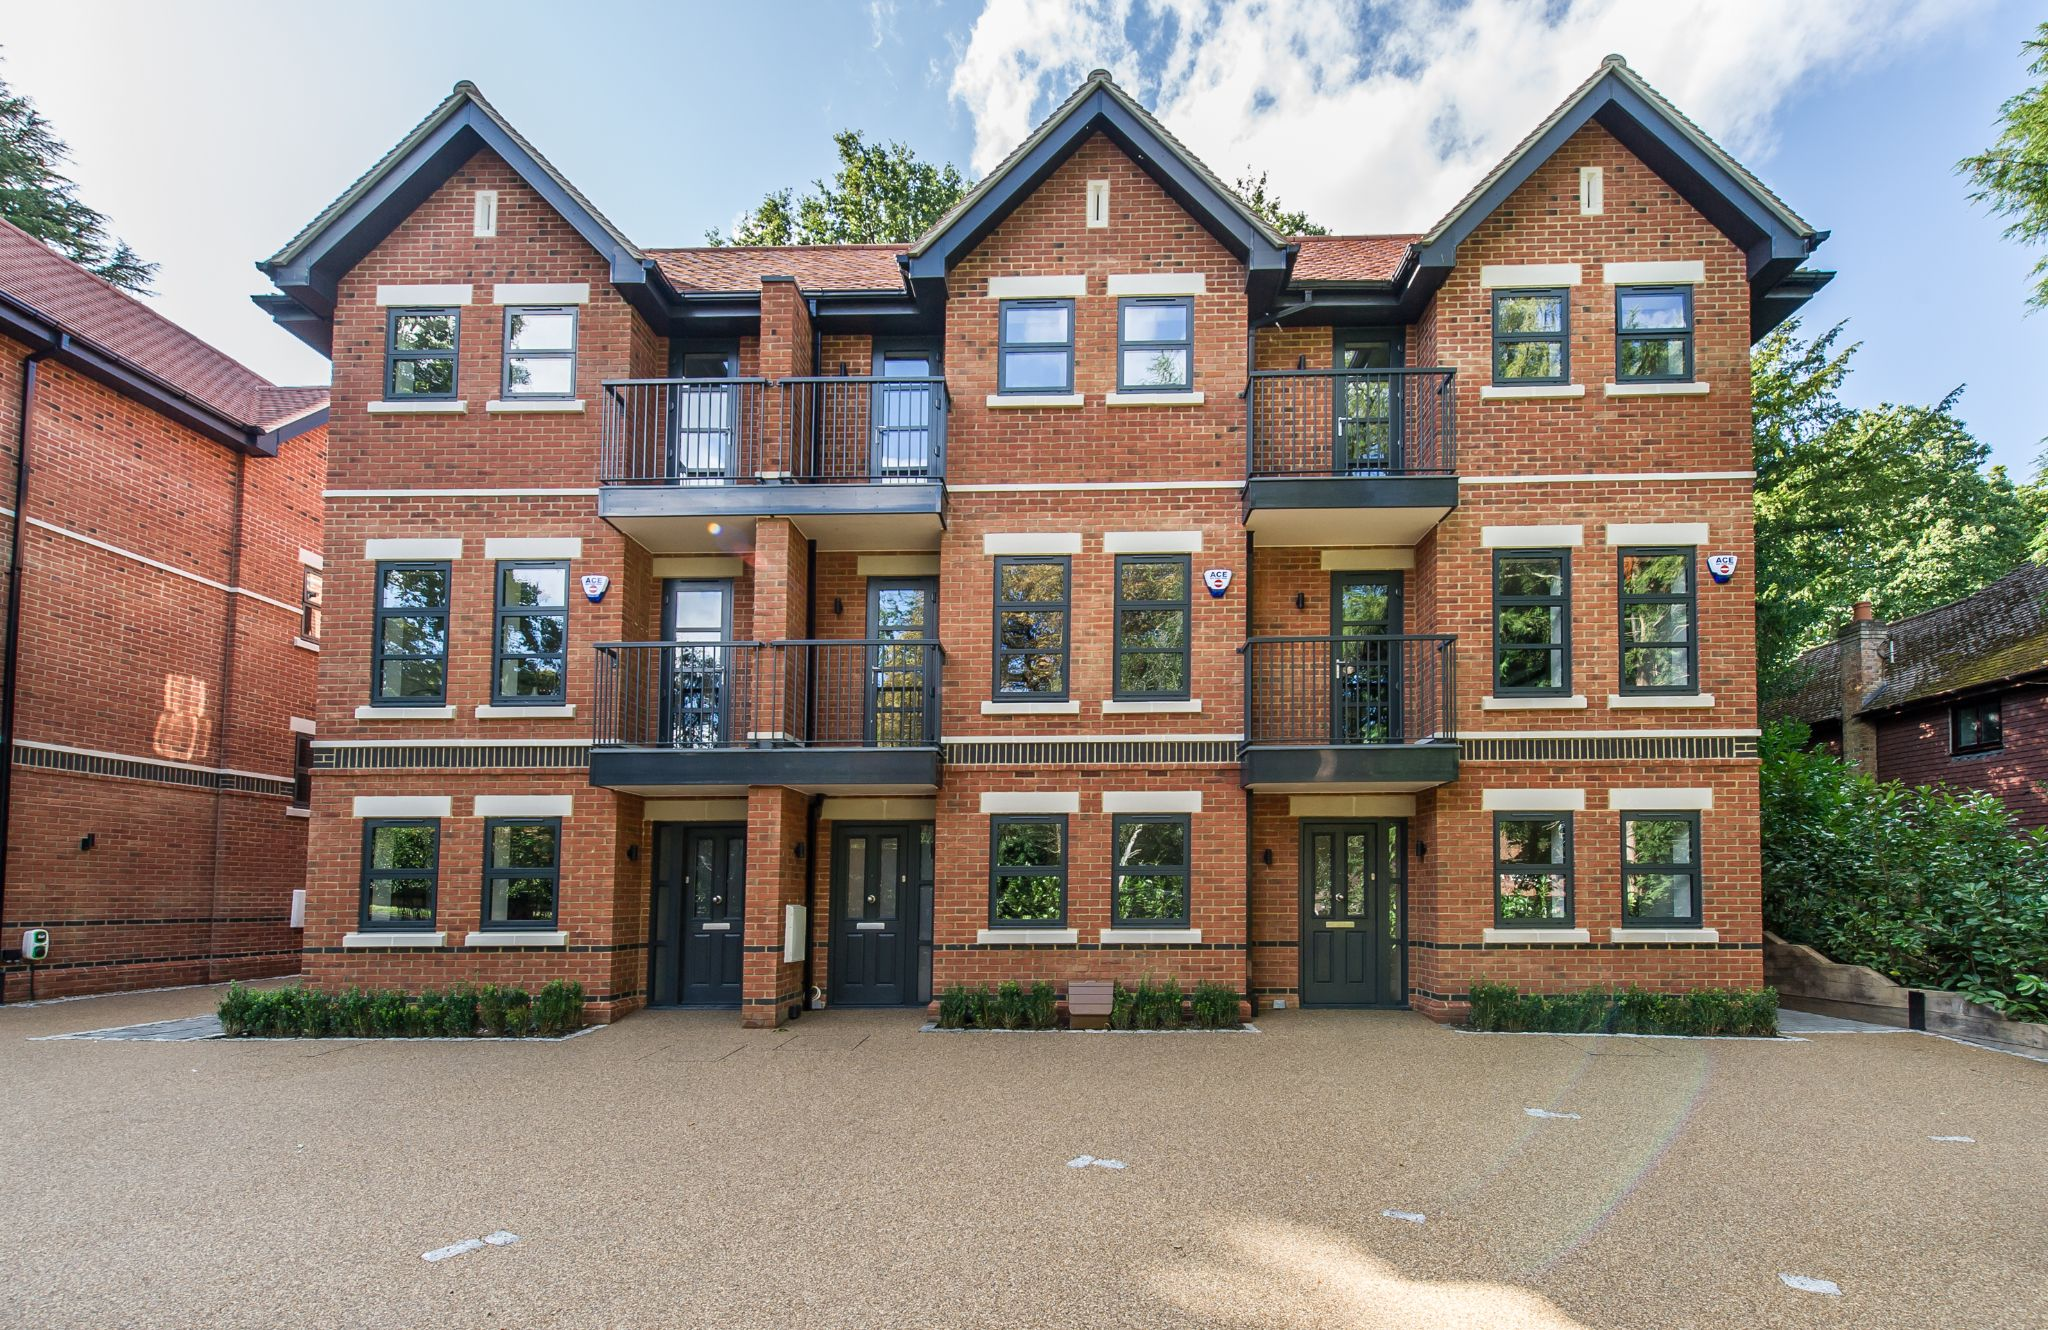 3 bedroom town house Sold in Sevenoaks - Photograph 1